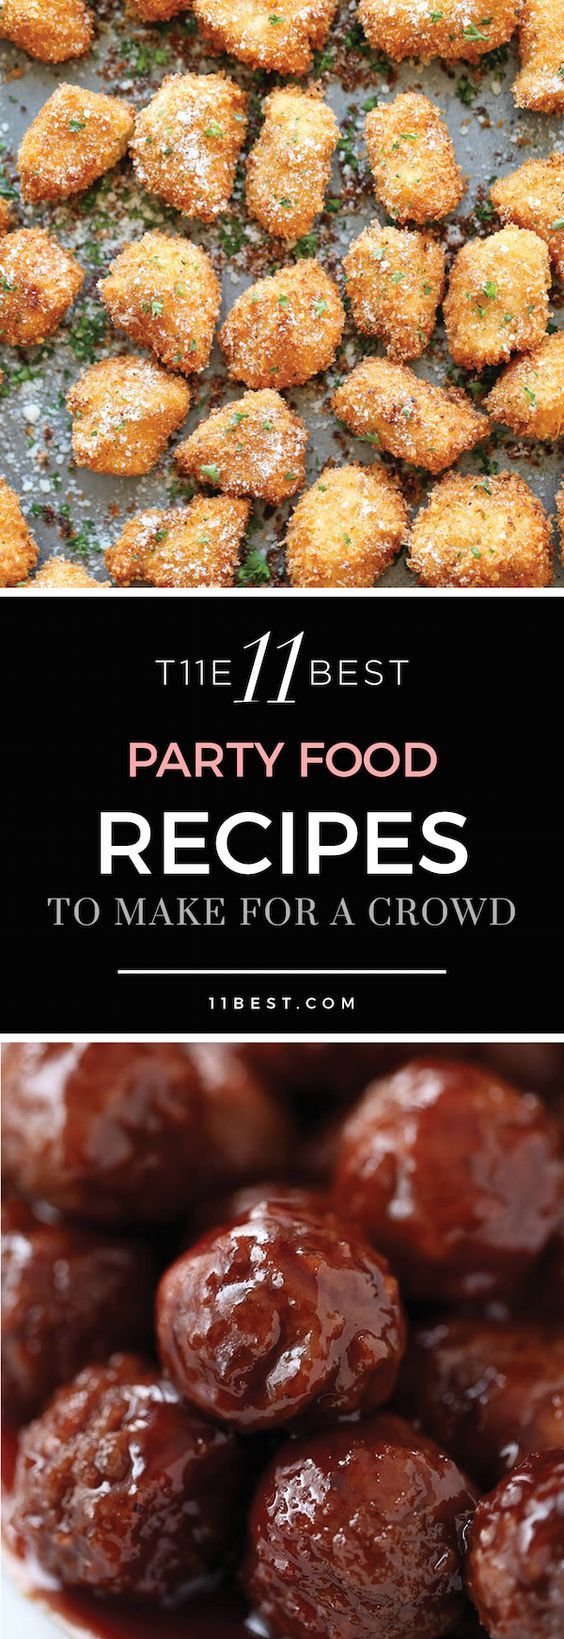 The 11 best party food recipes entremeses recetas y comida the 11 best party food recipes to make for a crowd forumfinder Image collections